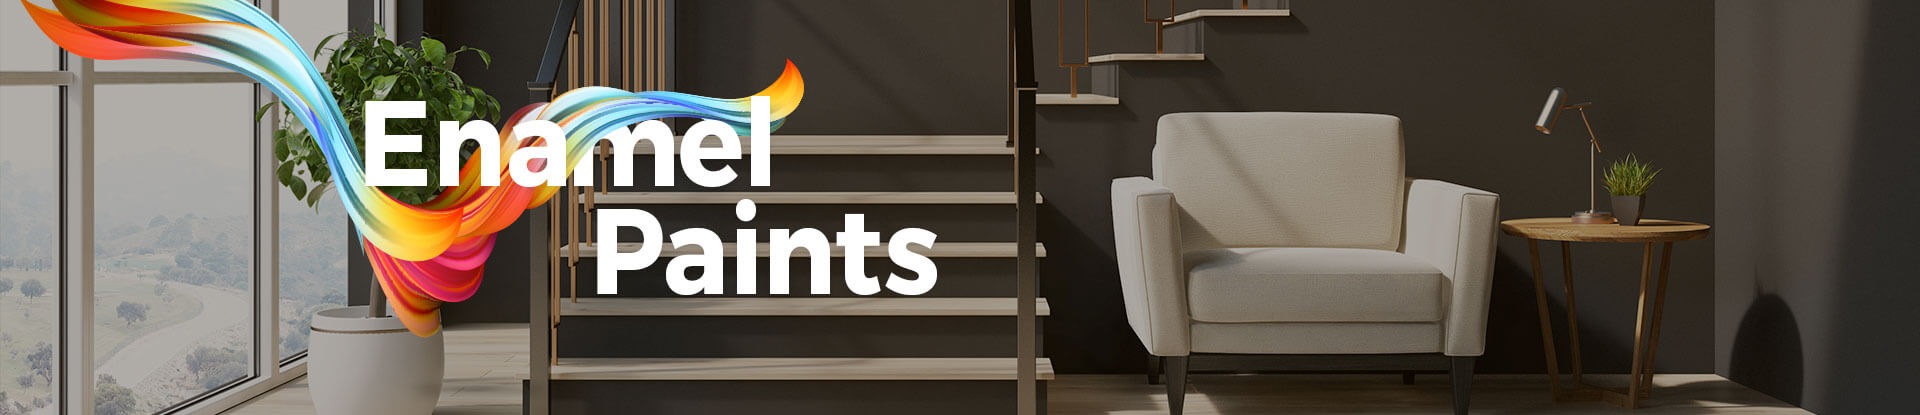 Huge range of Enamel Paint, Enamel paint colors Manufacturer in India | British Paints